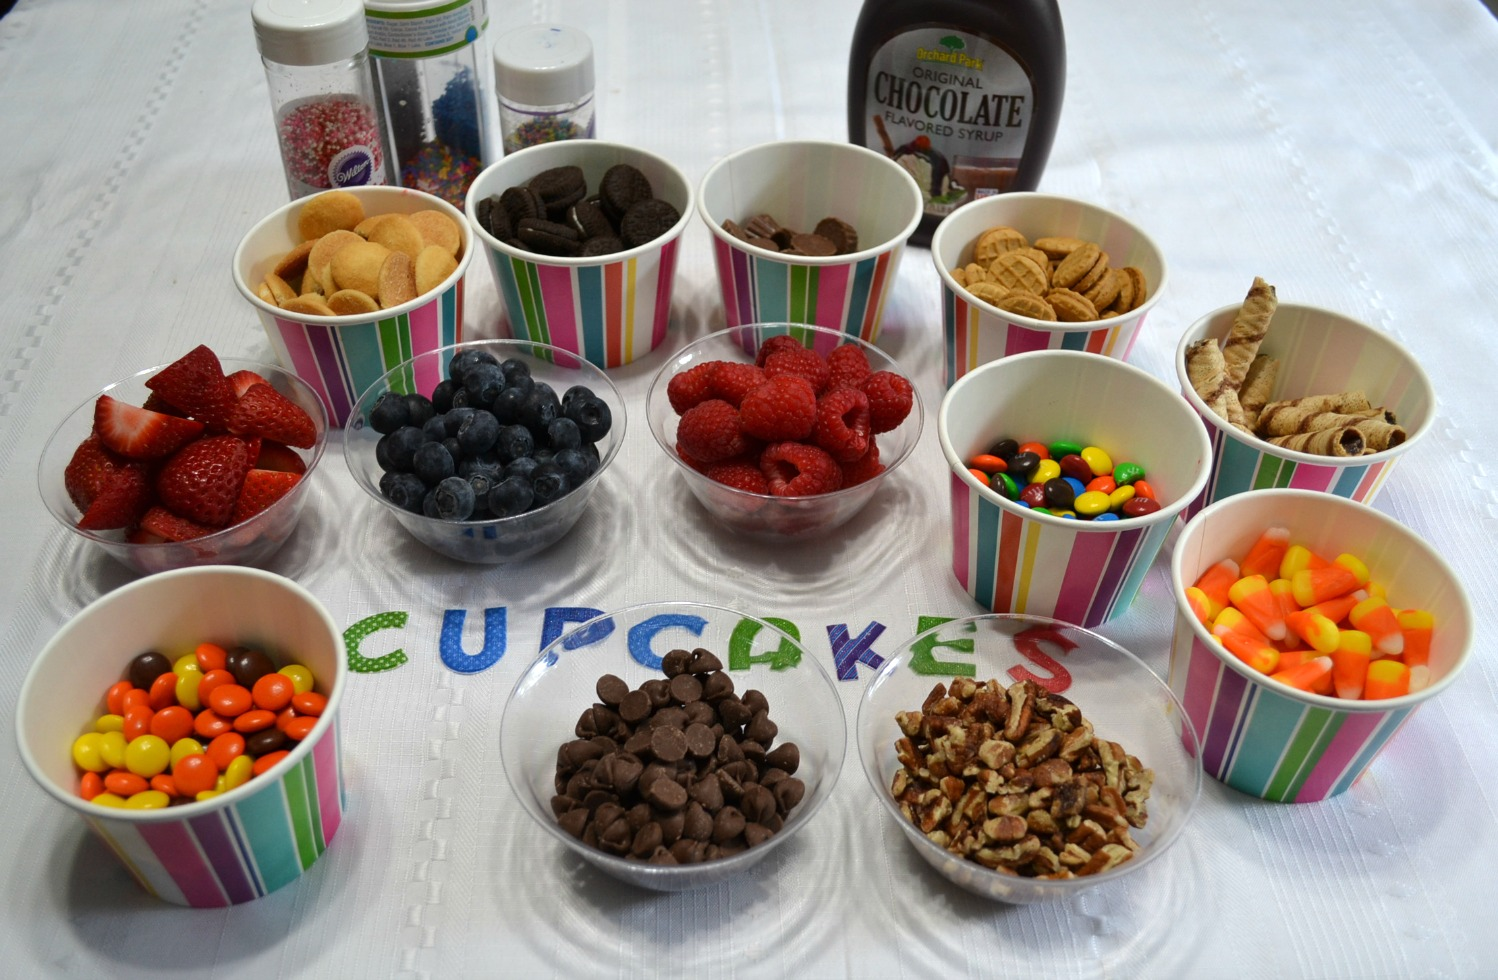 A fun idea for any party or get together with a build it yourself cupcake bar.